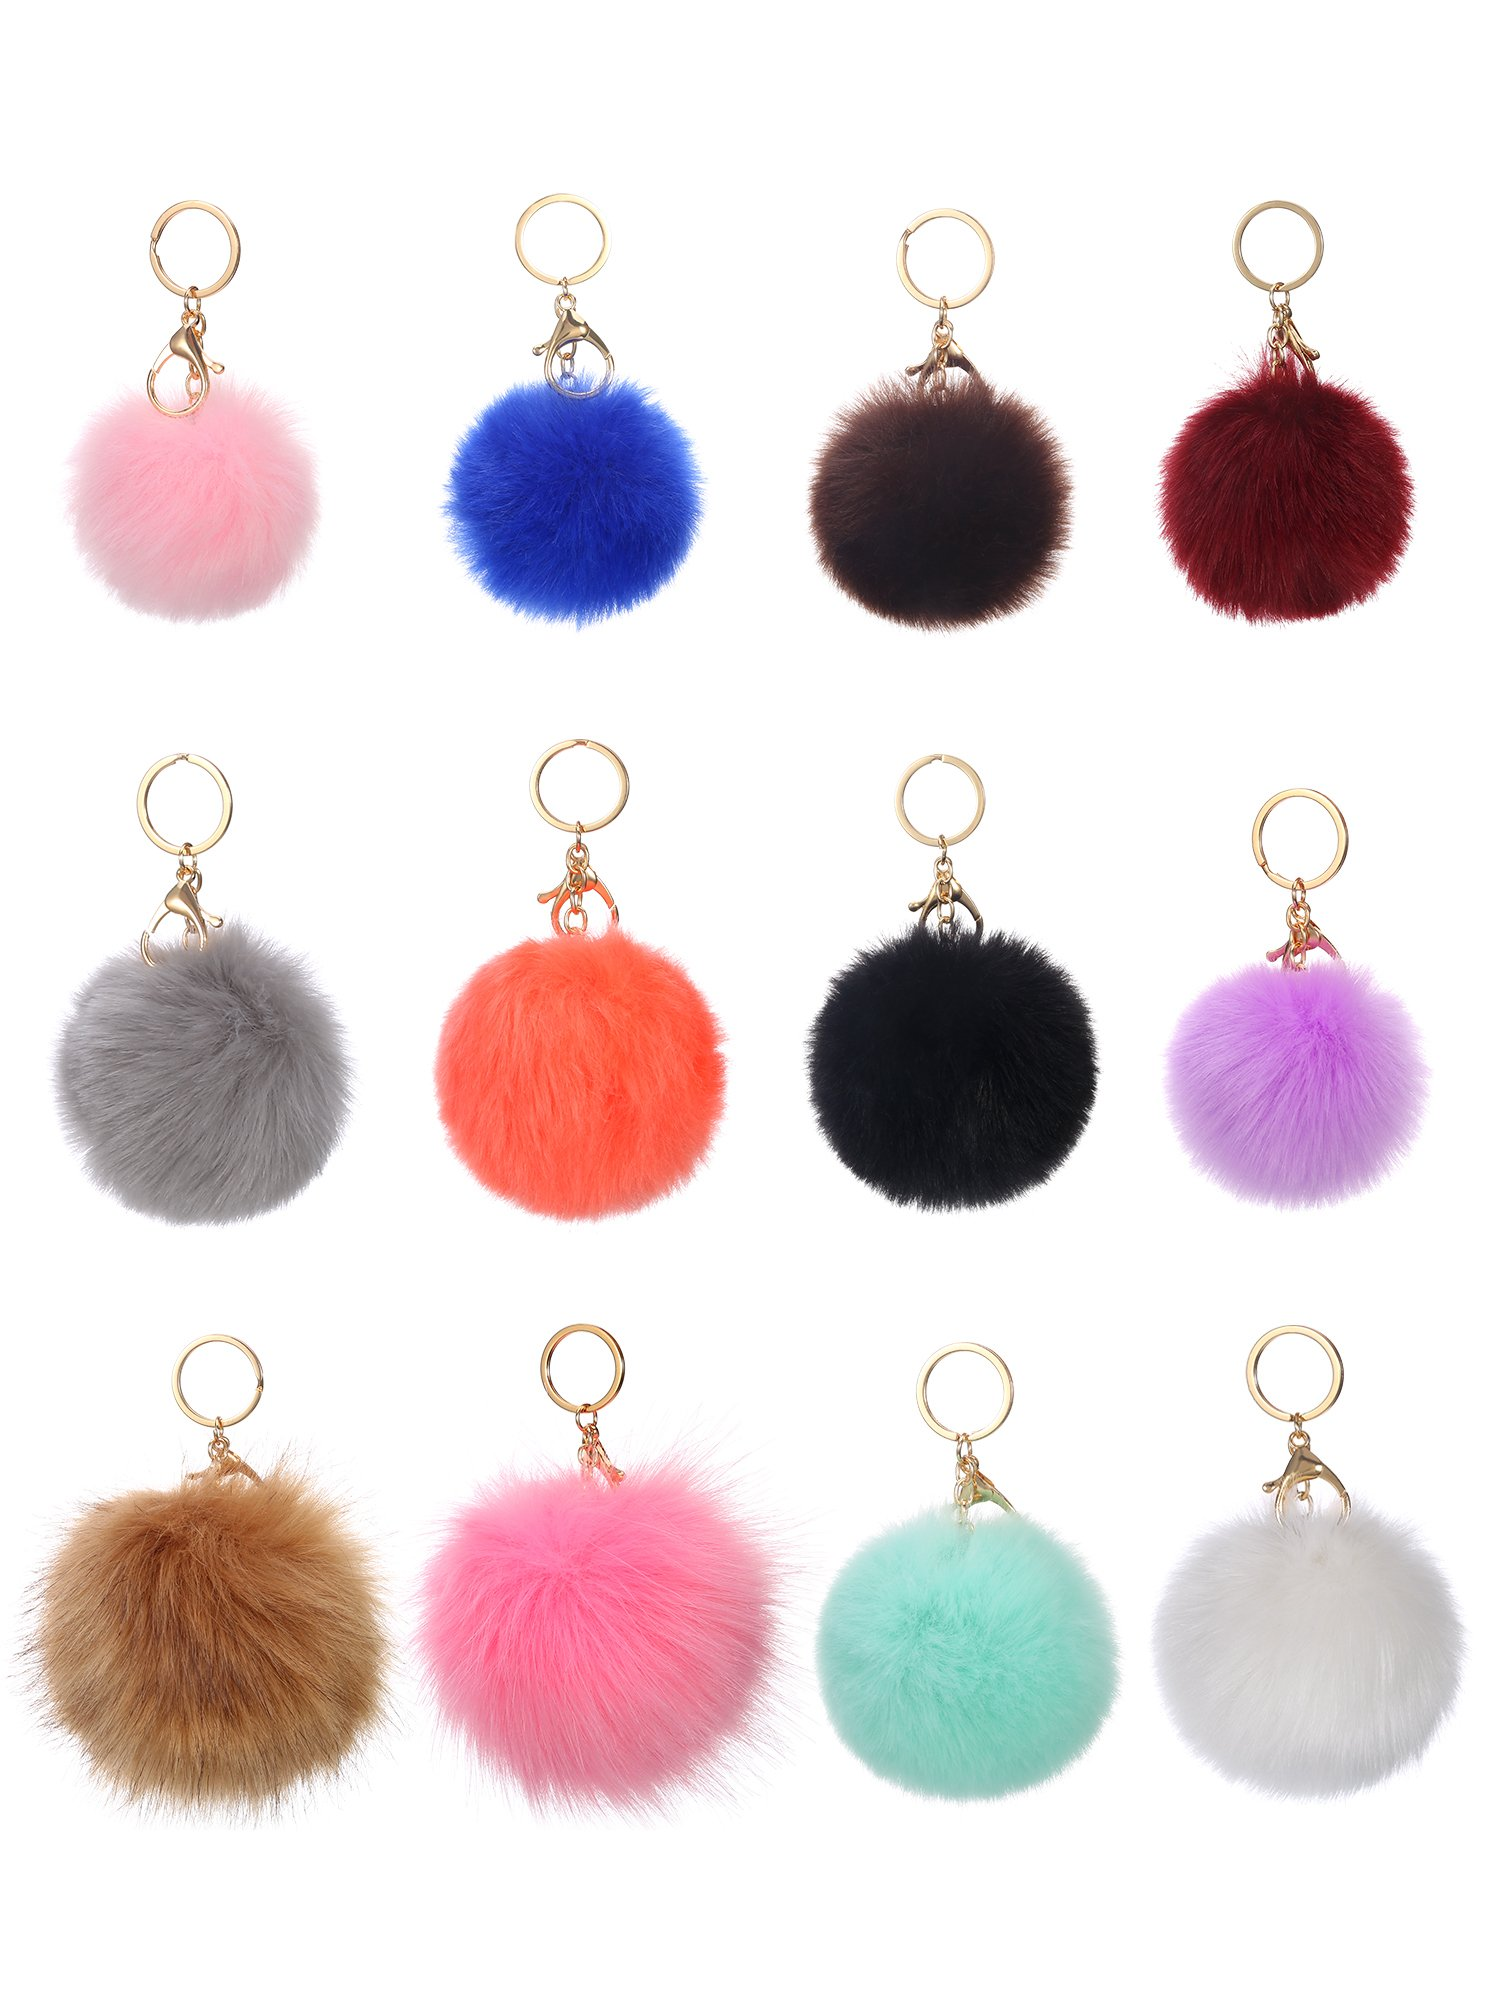 WILLBOND 12 Pieces Faux Fur Ball Pom Pom Keychain Fluffy Ball Key Chain with Key Ring for Handbag Bag Decoration, 8 cm, 10 cm, 14 cm